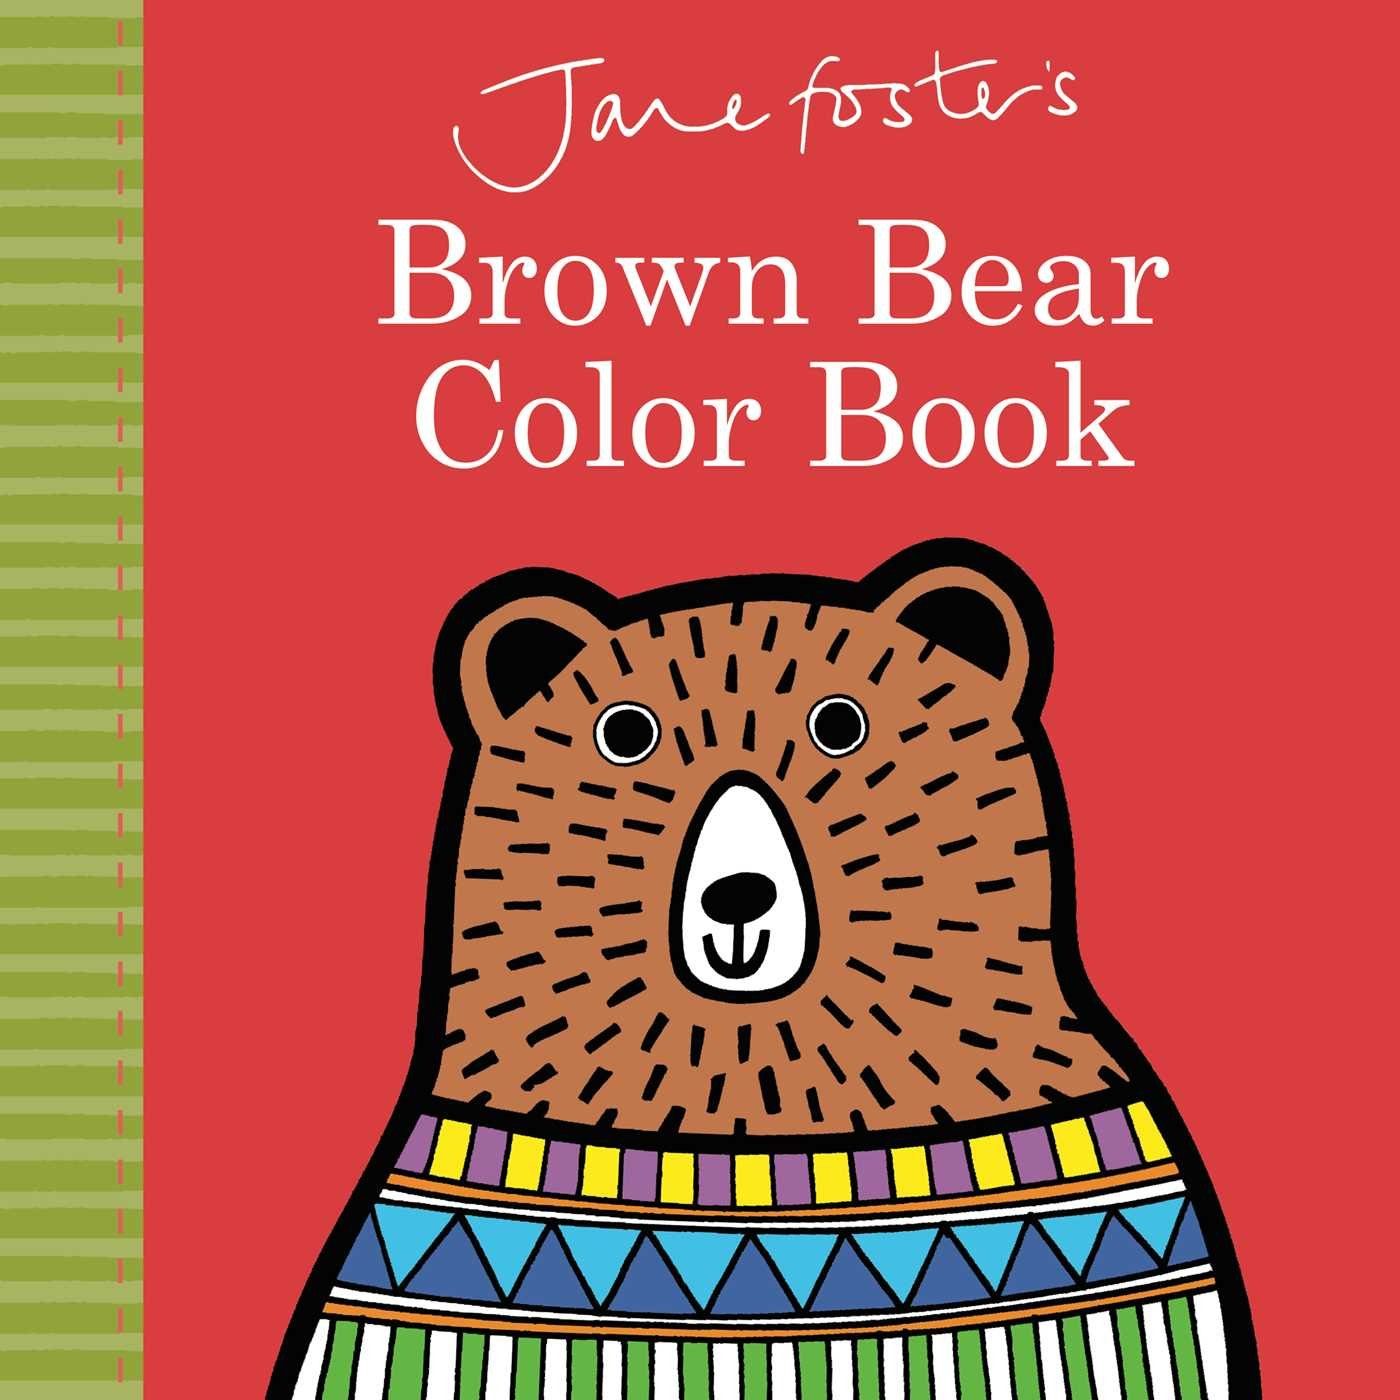 Download Jane Foster's Brown Bear Color Book (Jane Foster Books) PDF